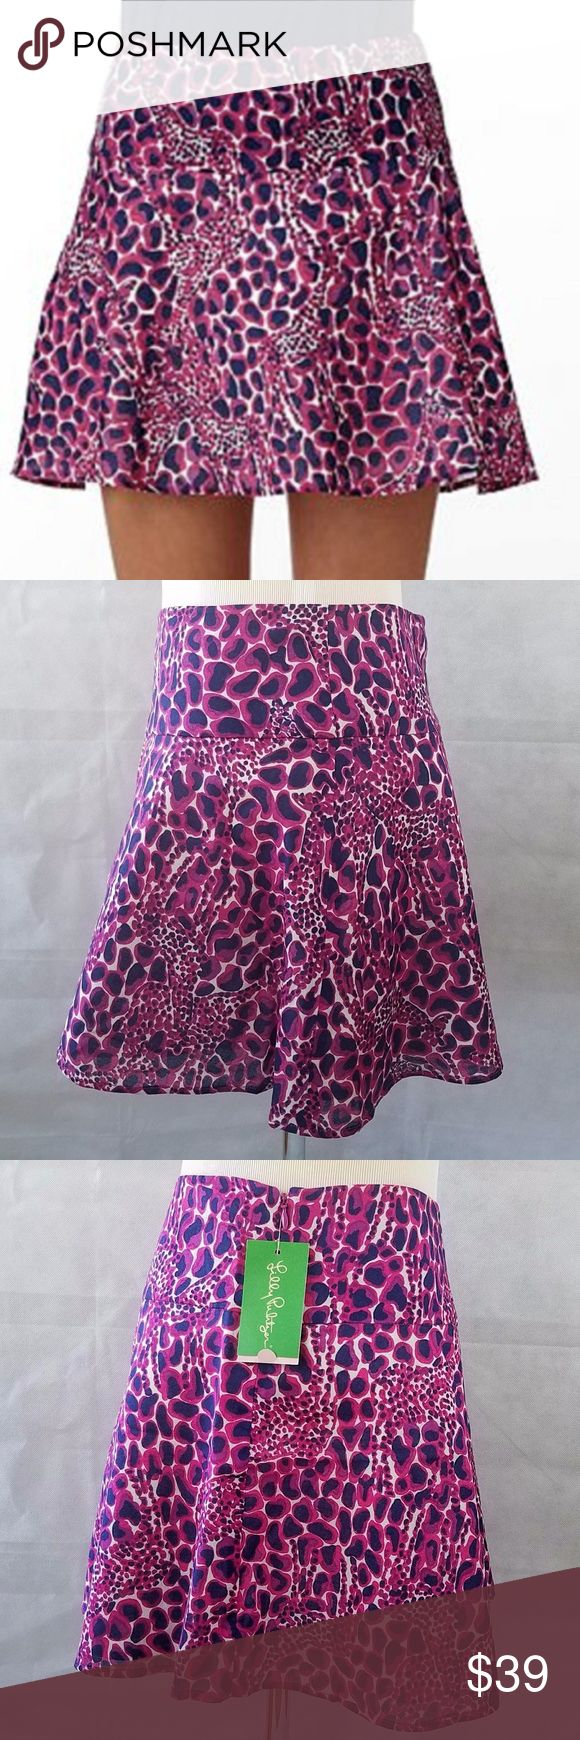 """CHARLESTON mini skirt is from LILLY PULITZER 4 LILLY PULITZER Mini Skirt Burgundy Giraffe HOLLYHOCK Gigi Charleston 6  CHARLESTON mini skirt is from LILLY PULITZER.  Size: 4 The skirt is fully lined in a soft cotton. The shell or top fabric is also a soft cotton. And it is cut at the bias, giving it a flirty A-line silhouette. The pattern is called Hollyhock Gigi. The print consists of large and small giraffes. Coloring is burgundy, cranberry, white and dark navy-blue. Length: 16"""" Waist…"""